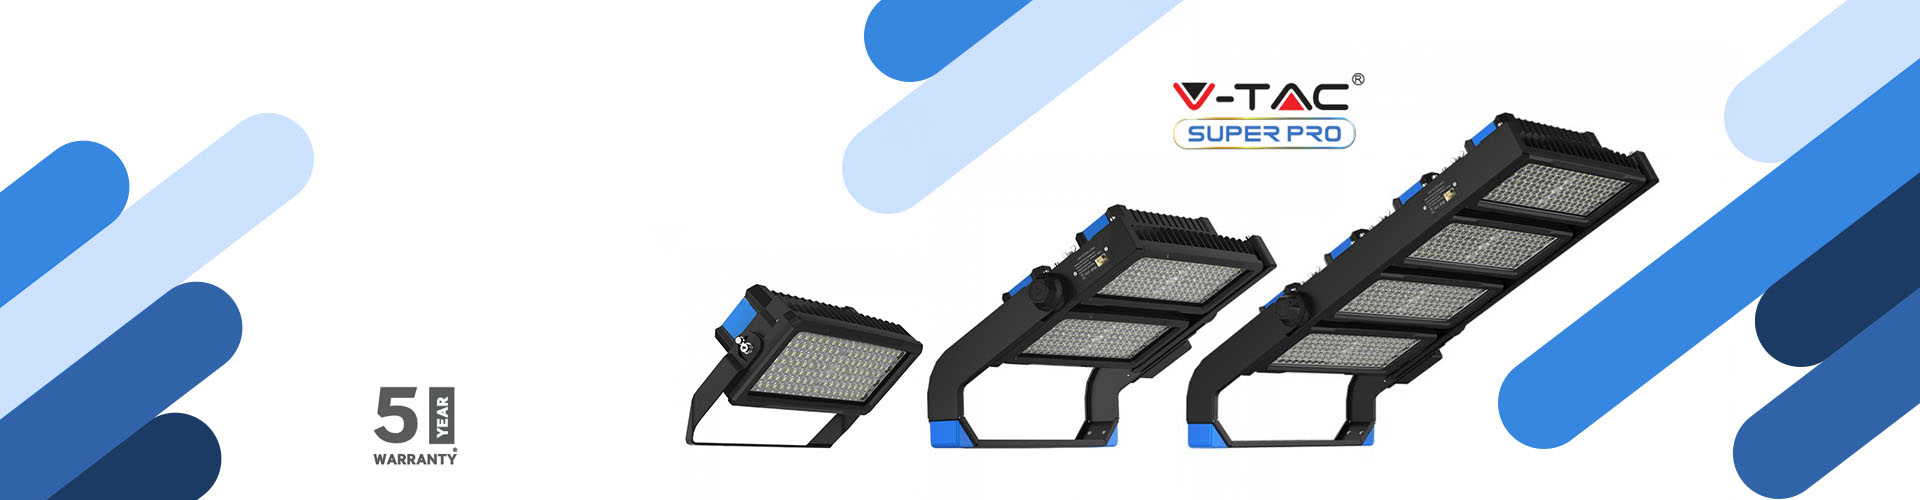 floodlights-superpro